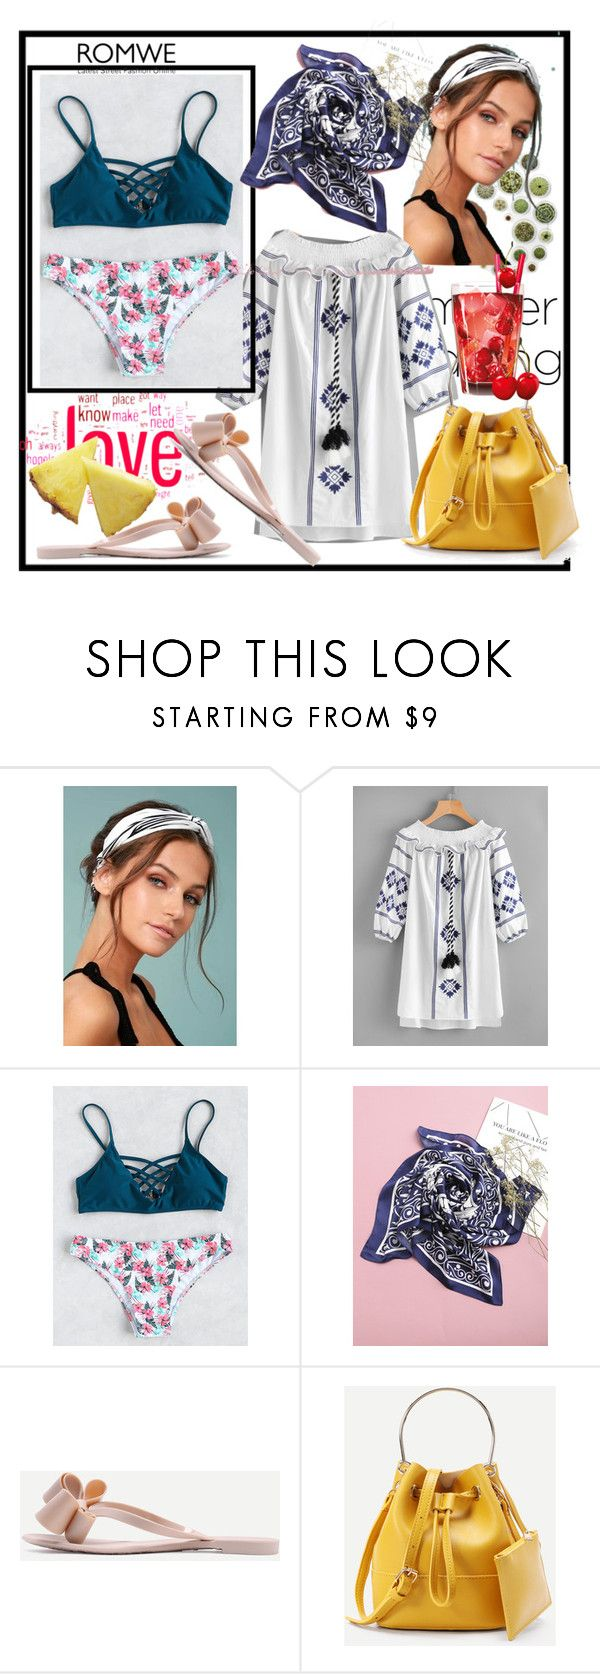 """""""romwe-XVIII/2"""" by ermansom ❤ liked on Polyvore featuring LULUS, WithChic and romwe"""